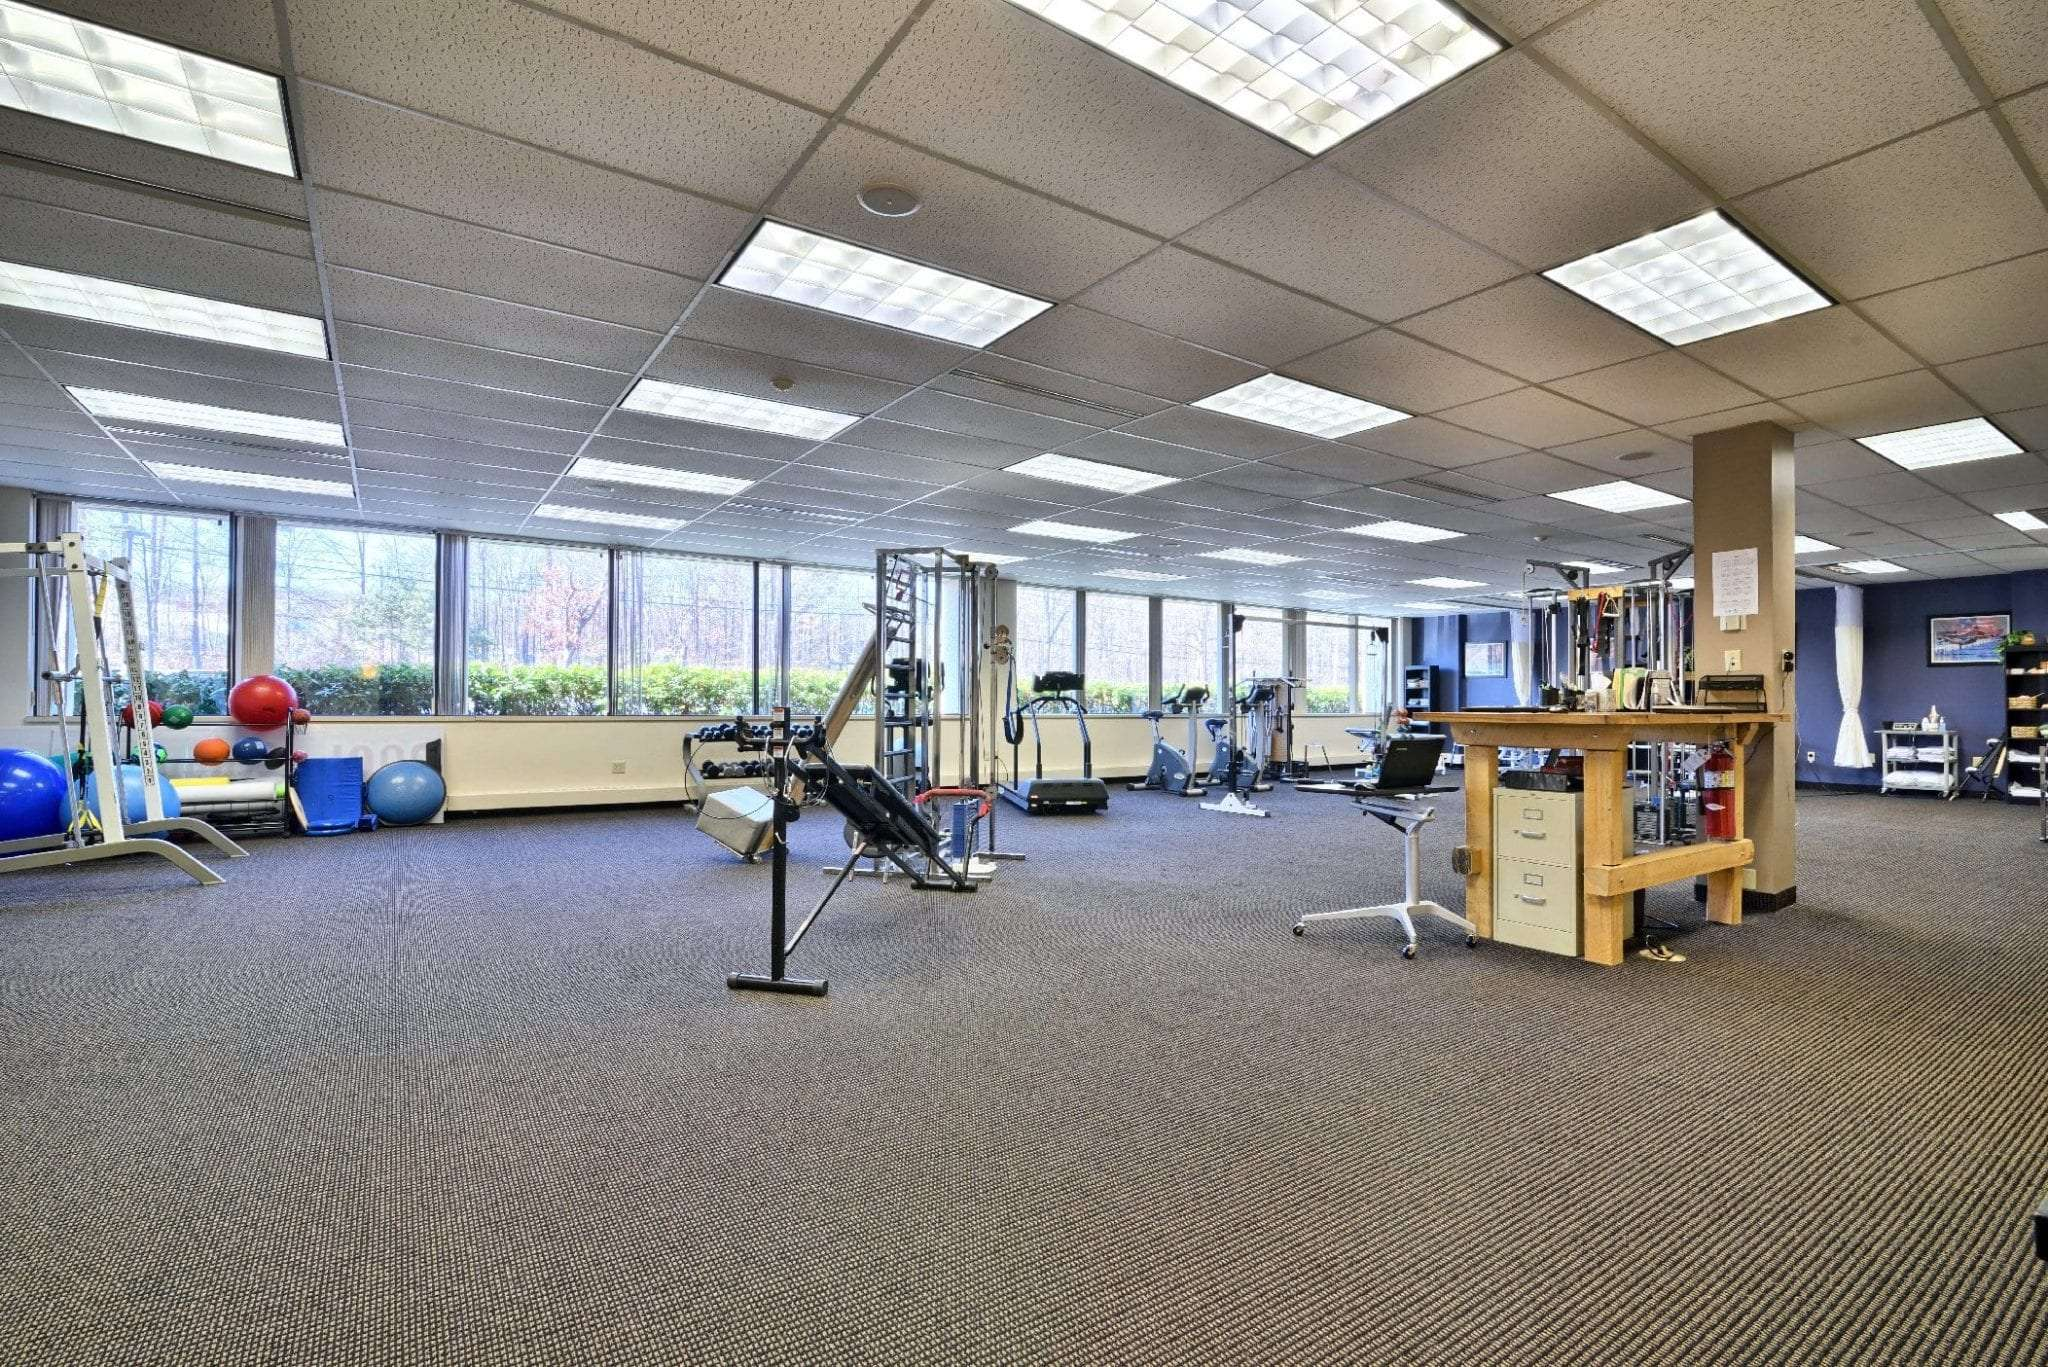 Here is an image of our carpeted interior of our physical therapy clinic in Farmington, Connecticut.